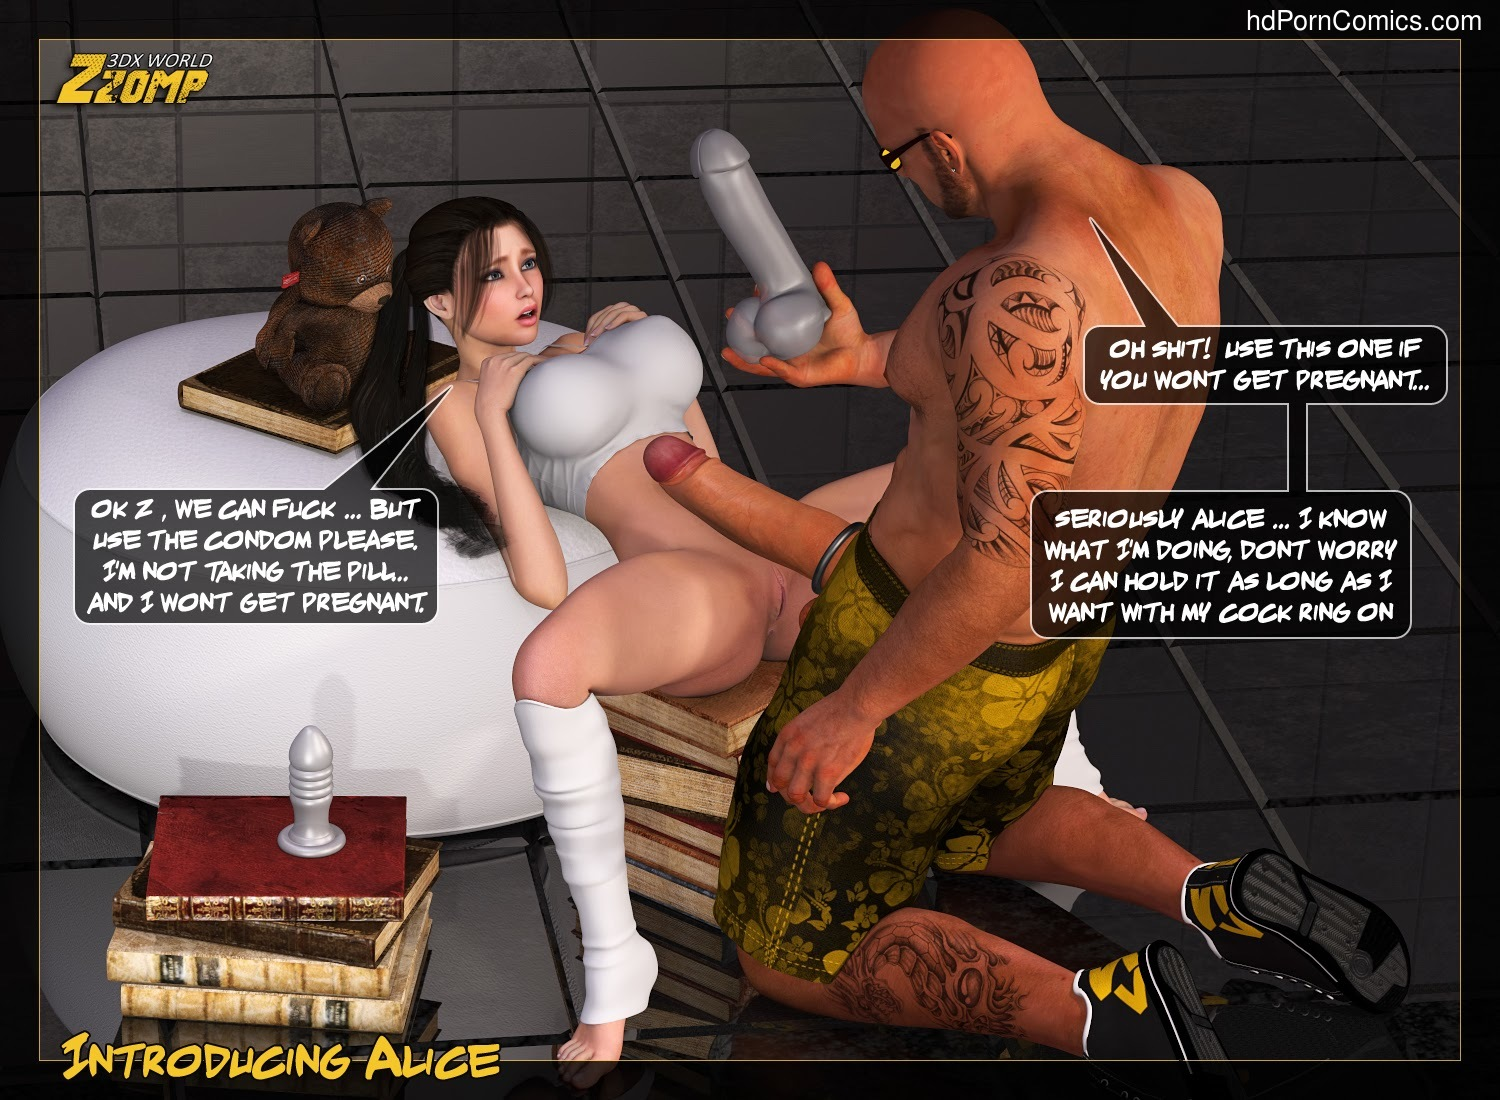 Zzomp – Introducing Alice8 free sex comic